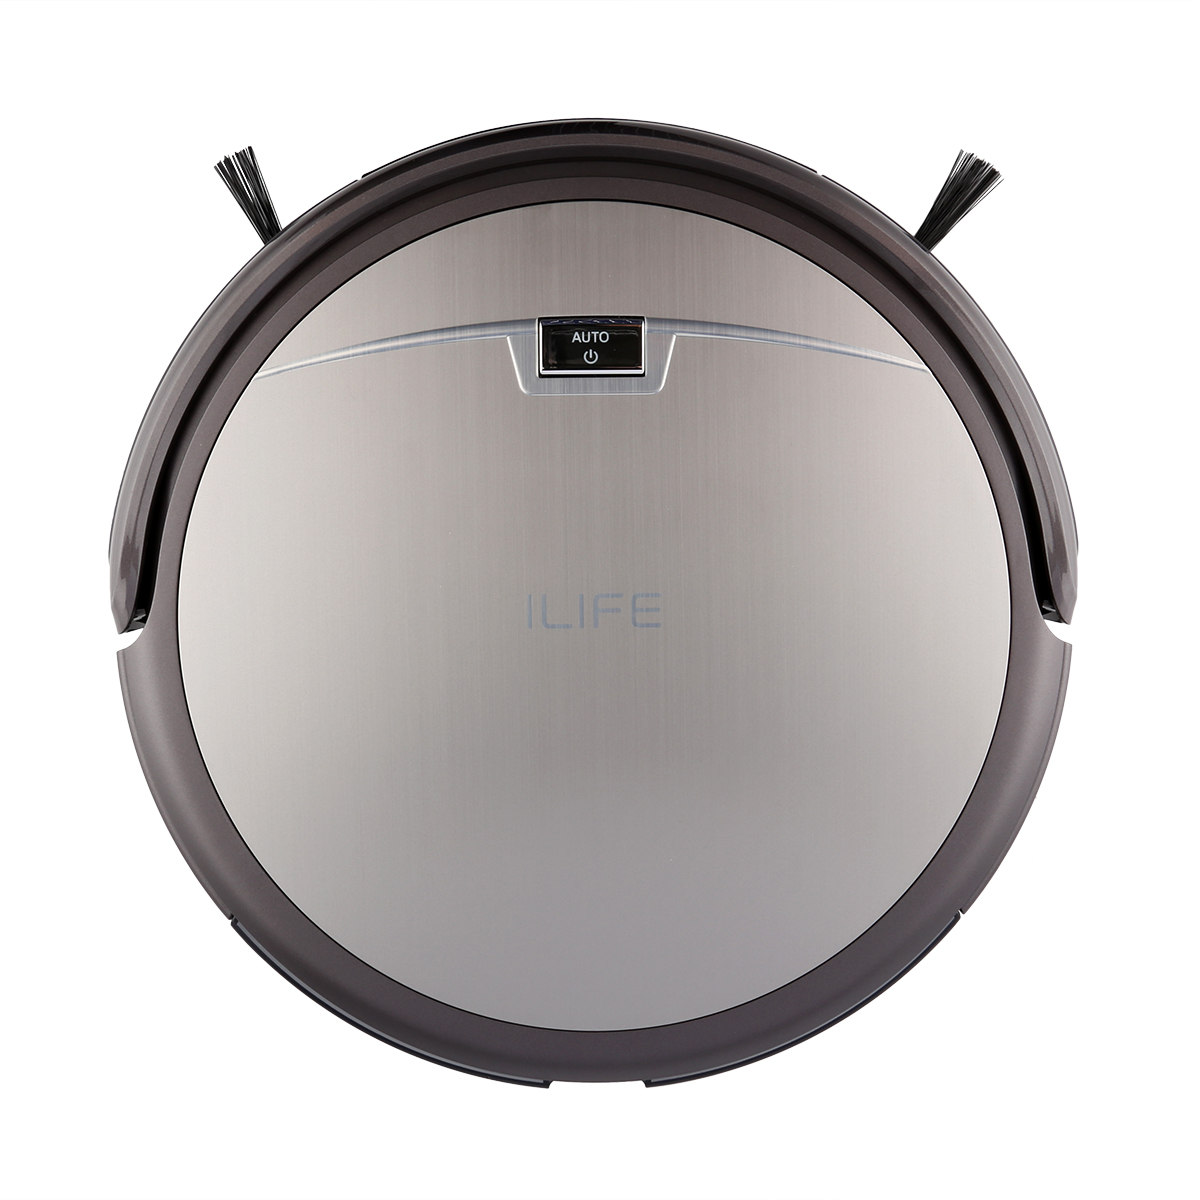 Ilife A4s Robot Vacuum Cleaner With Powerful Suction And